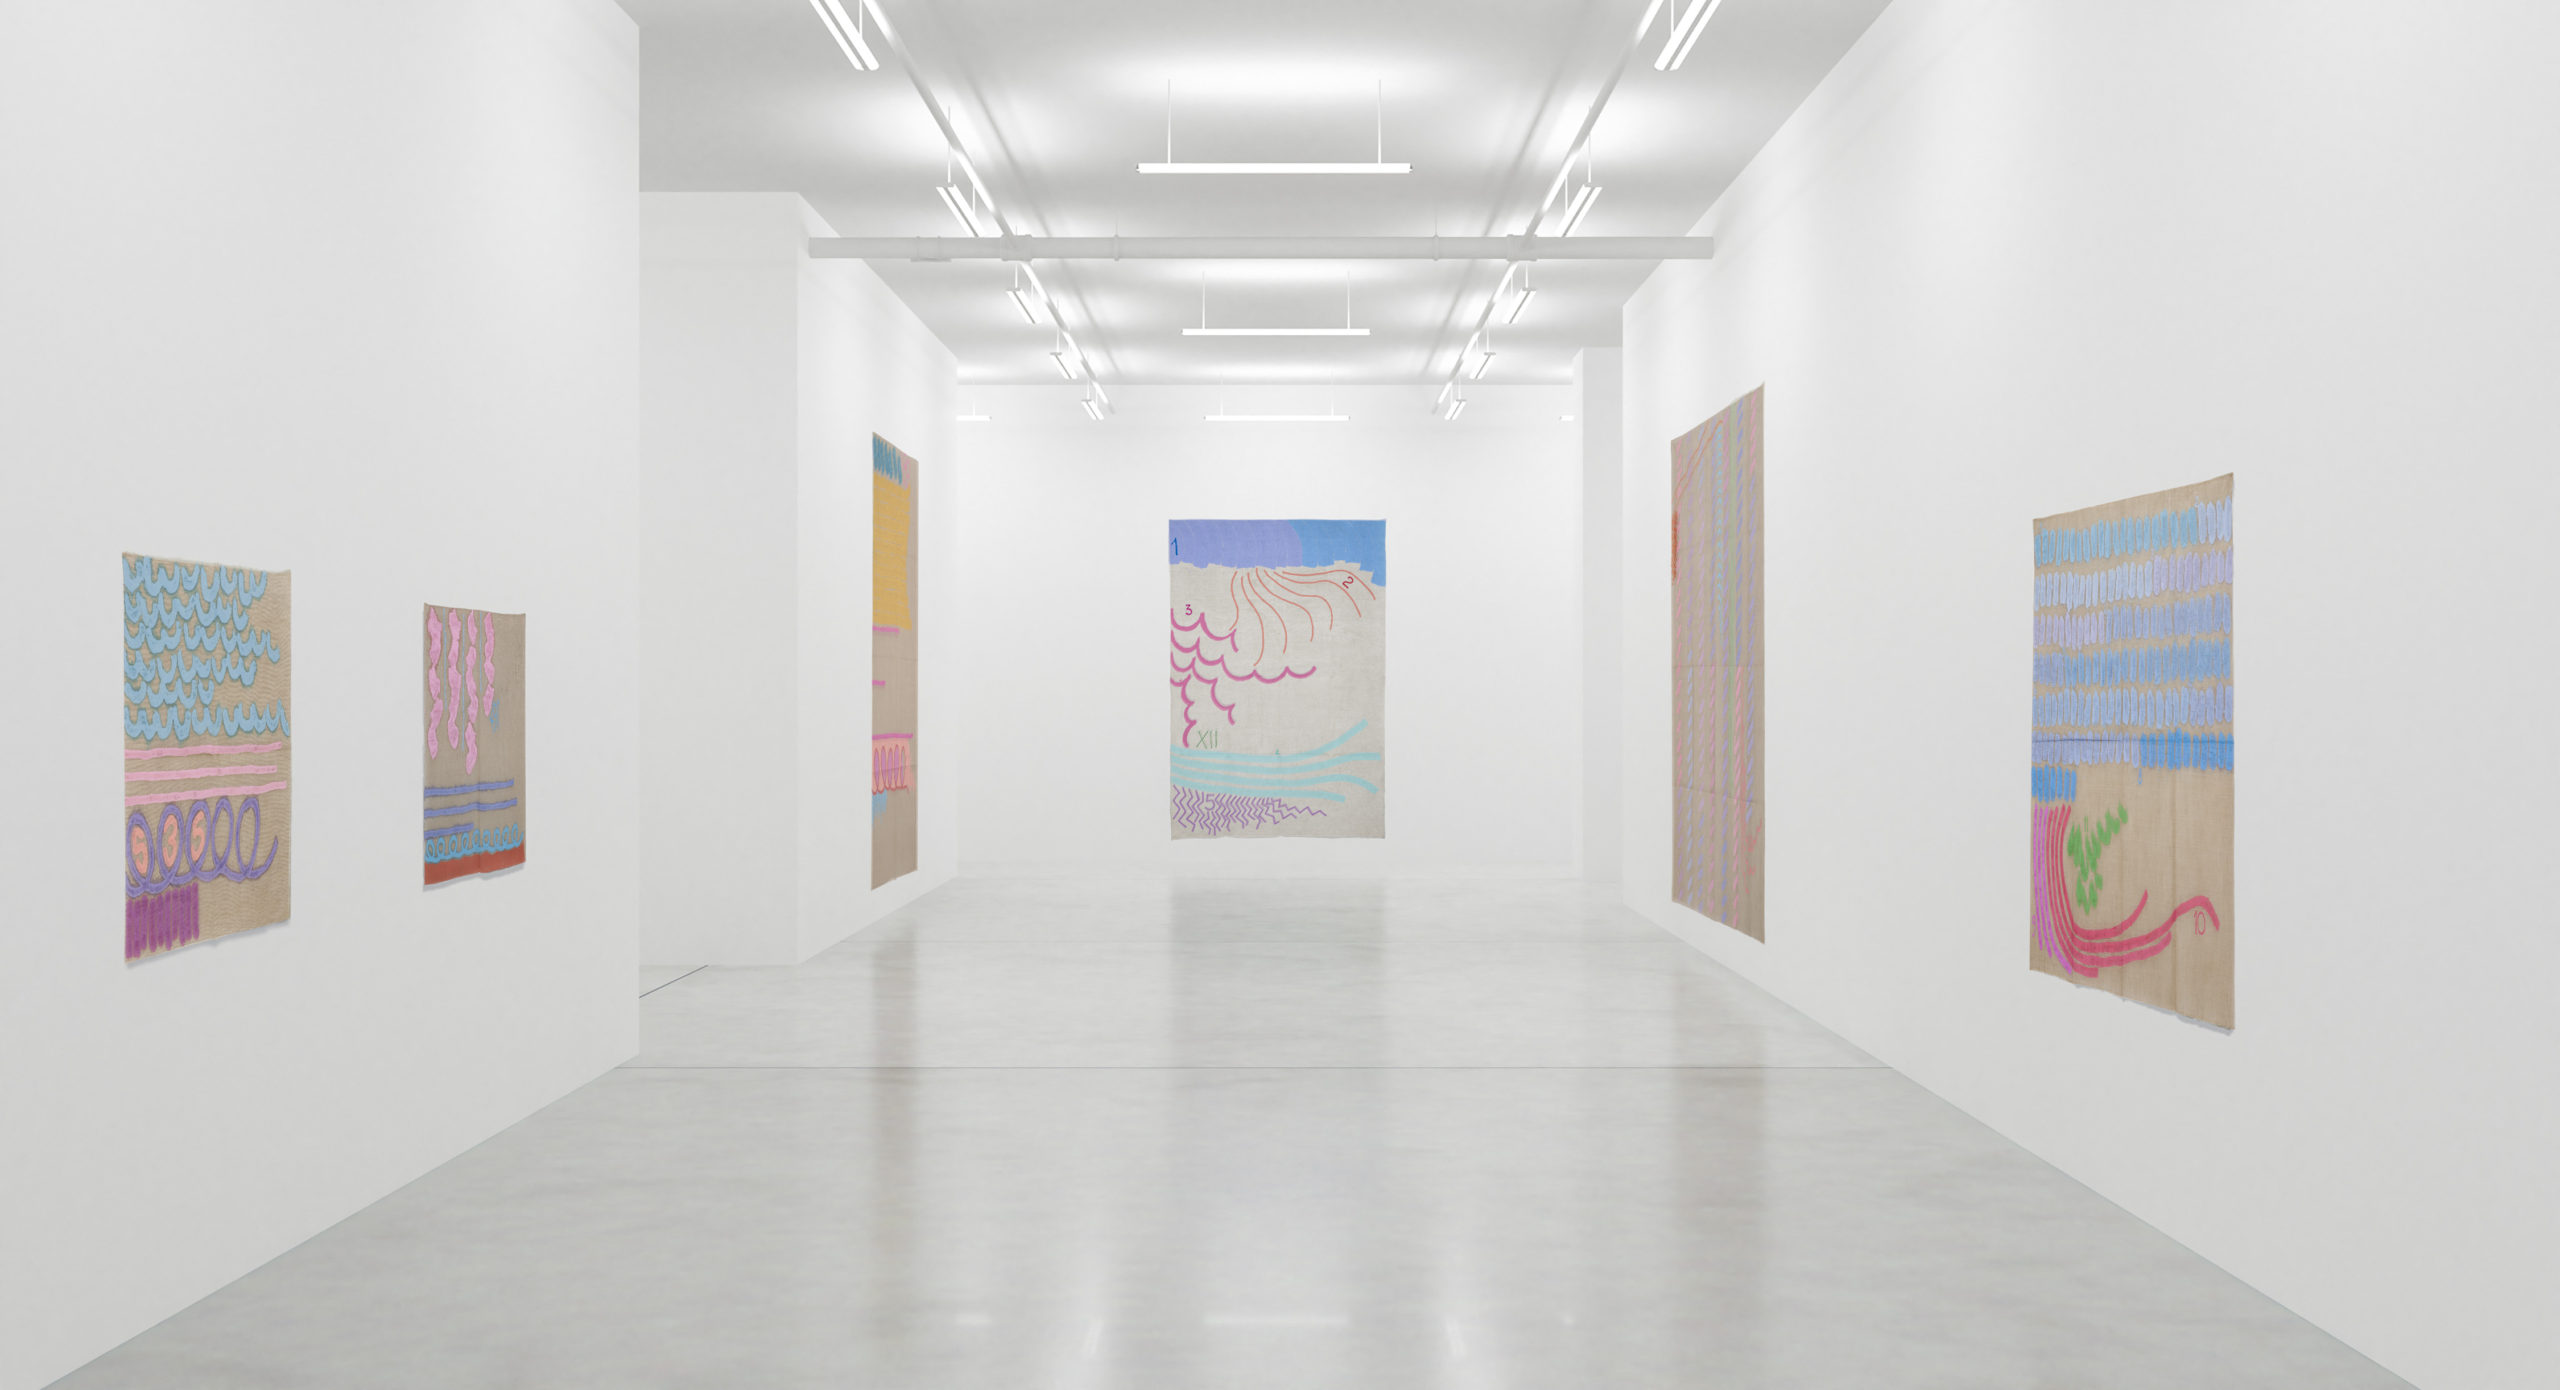 Installation view, Giorgio Griffa art exhibition, The 1990s at Casey Kaplan, New York, 2020